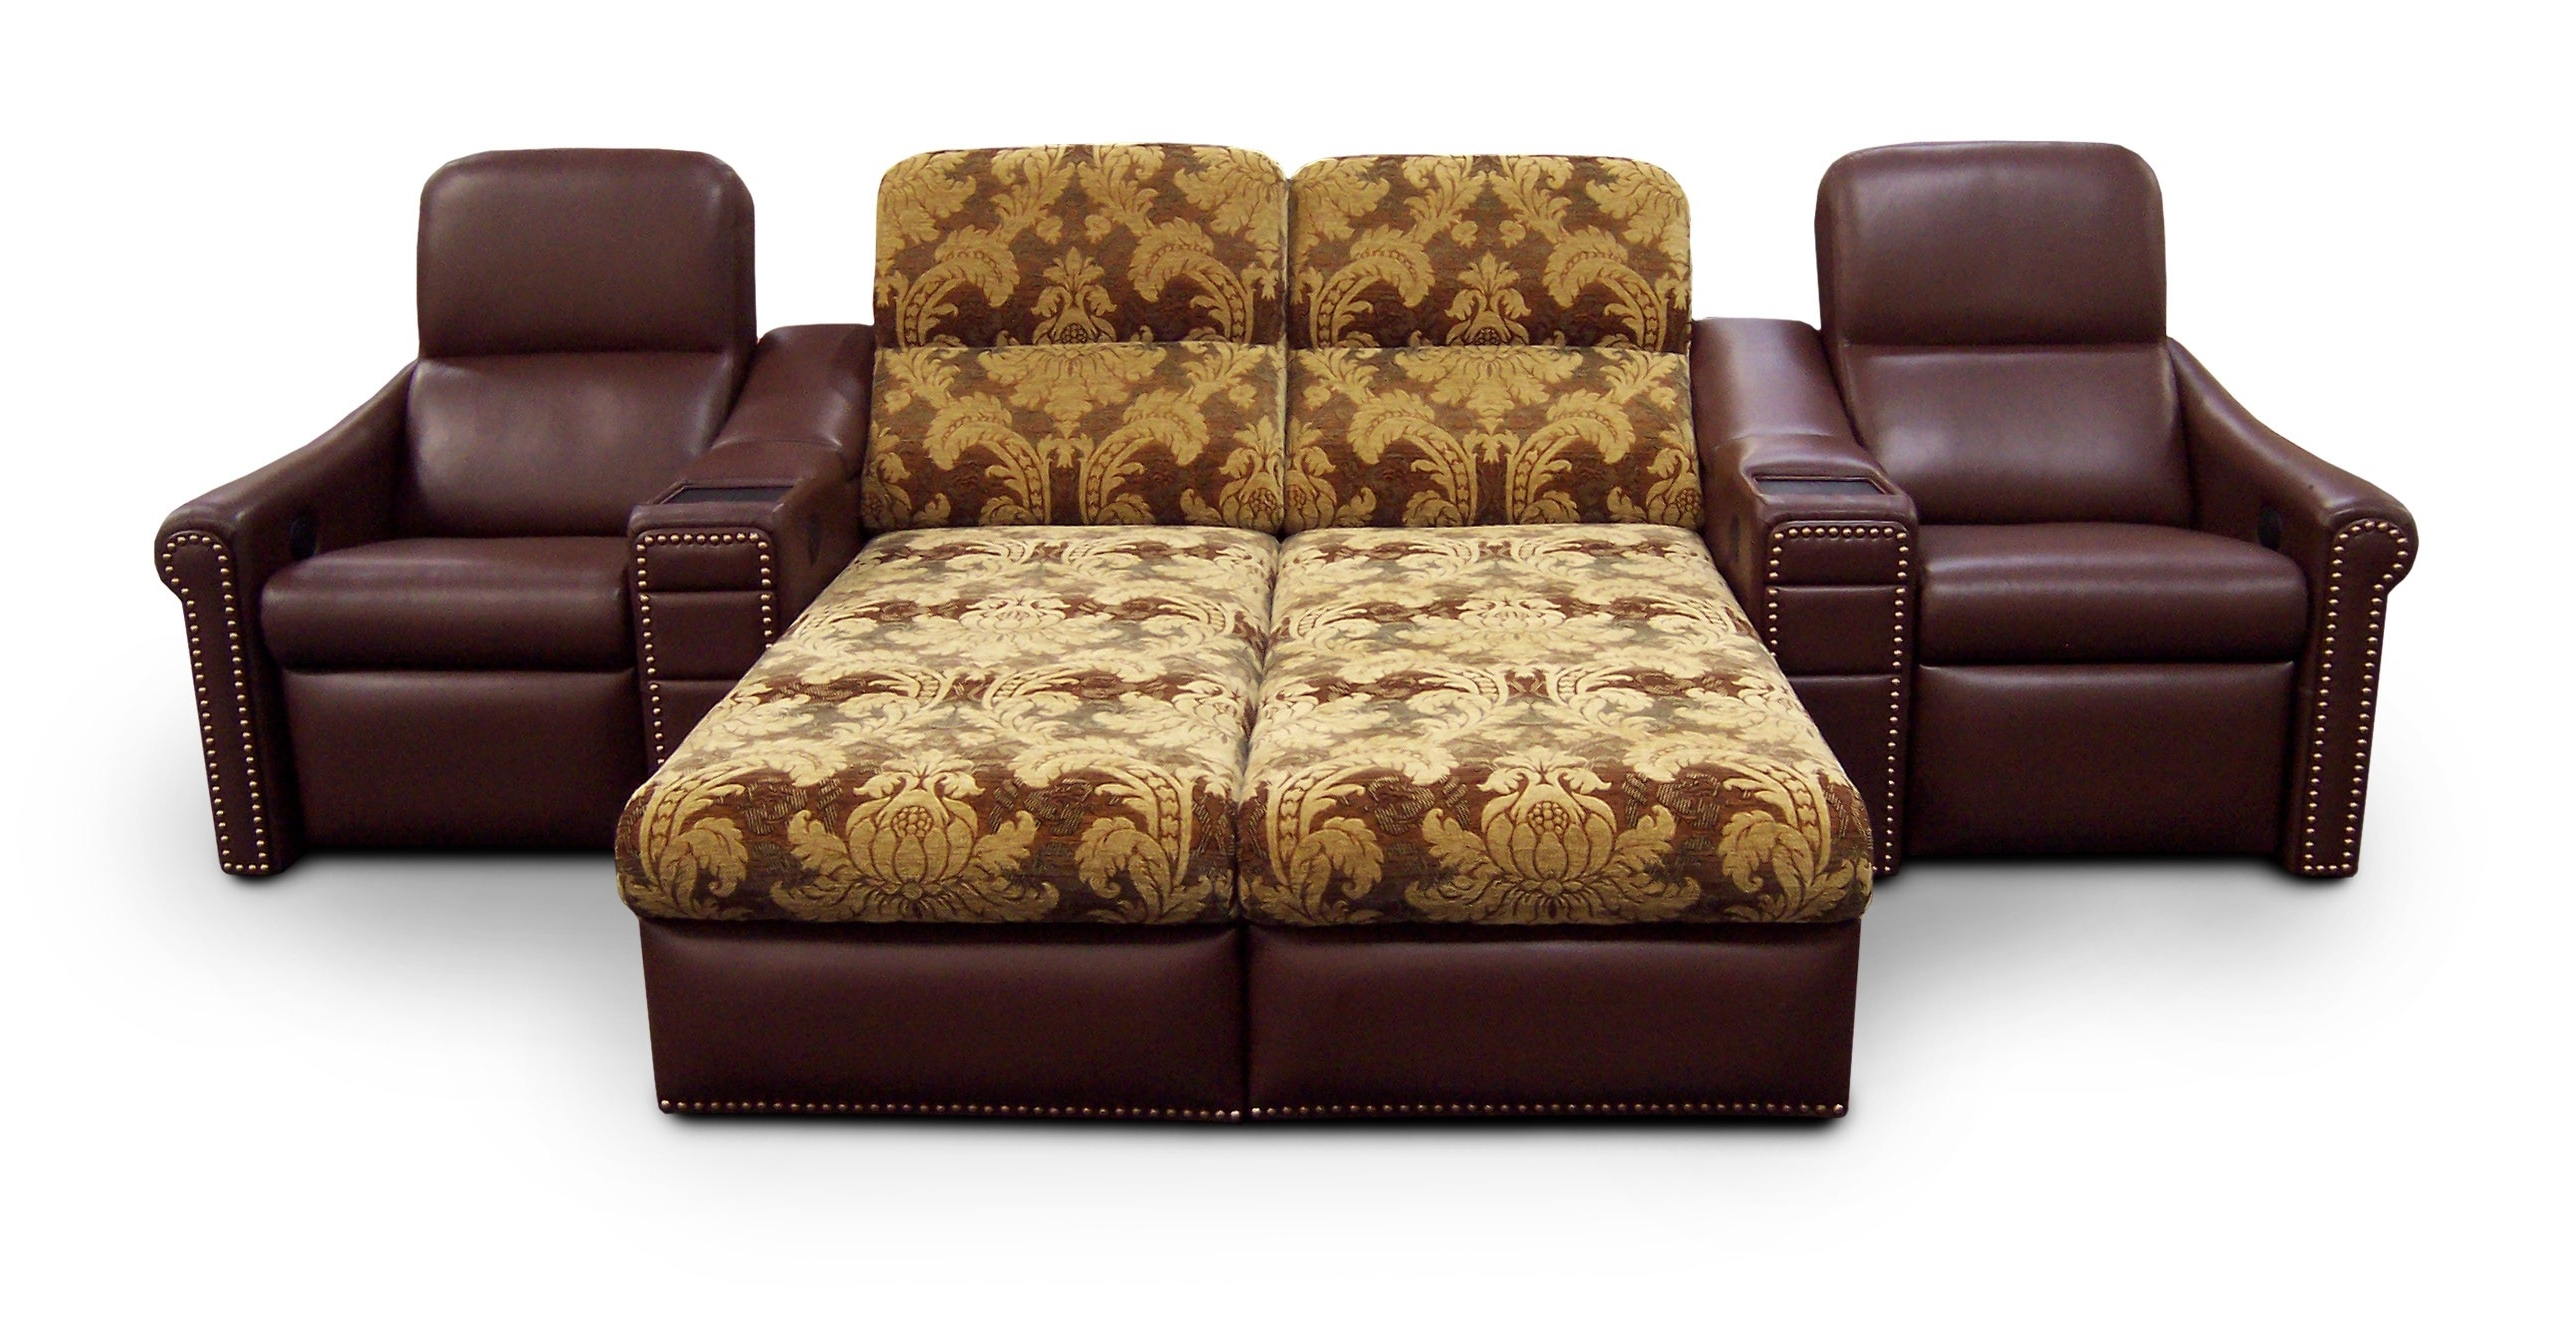 Funiture: Sleeper Sofa Ideas For Living Room Using Brown Leather With Regard To Well Liked Chaise Lounge Sleeper Sofas (View 6 of 15)